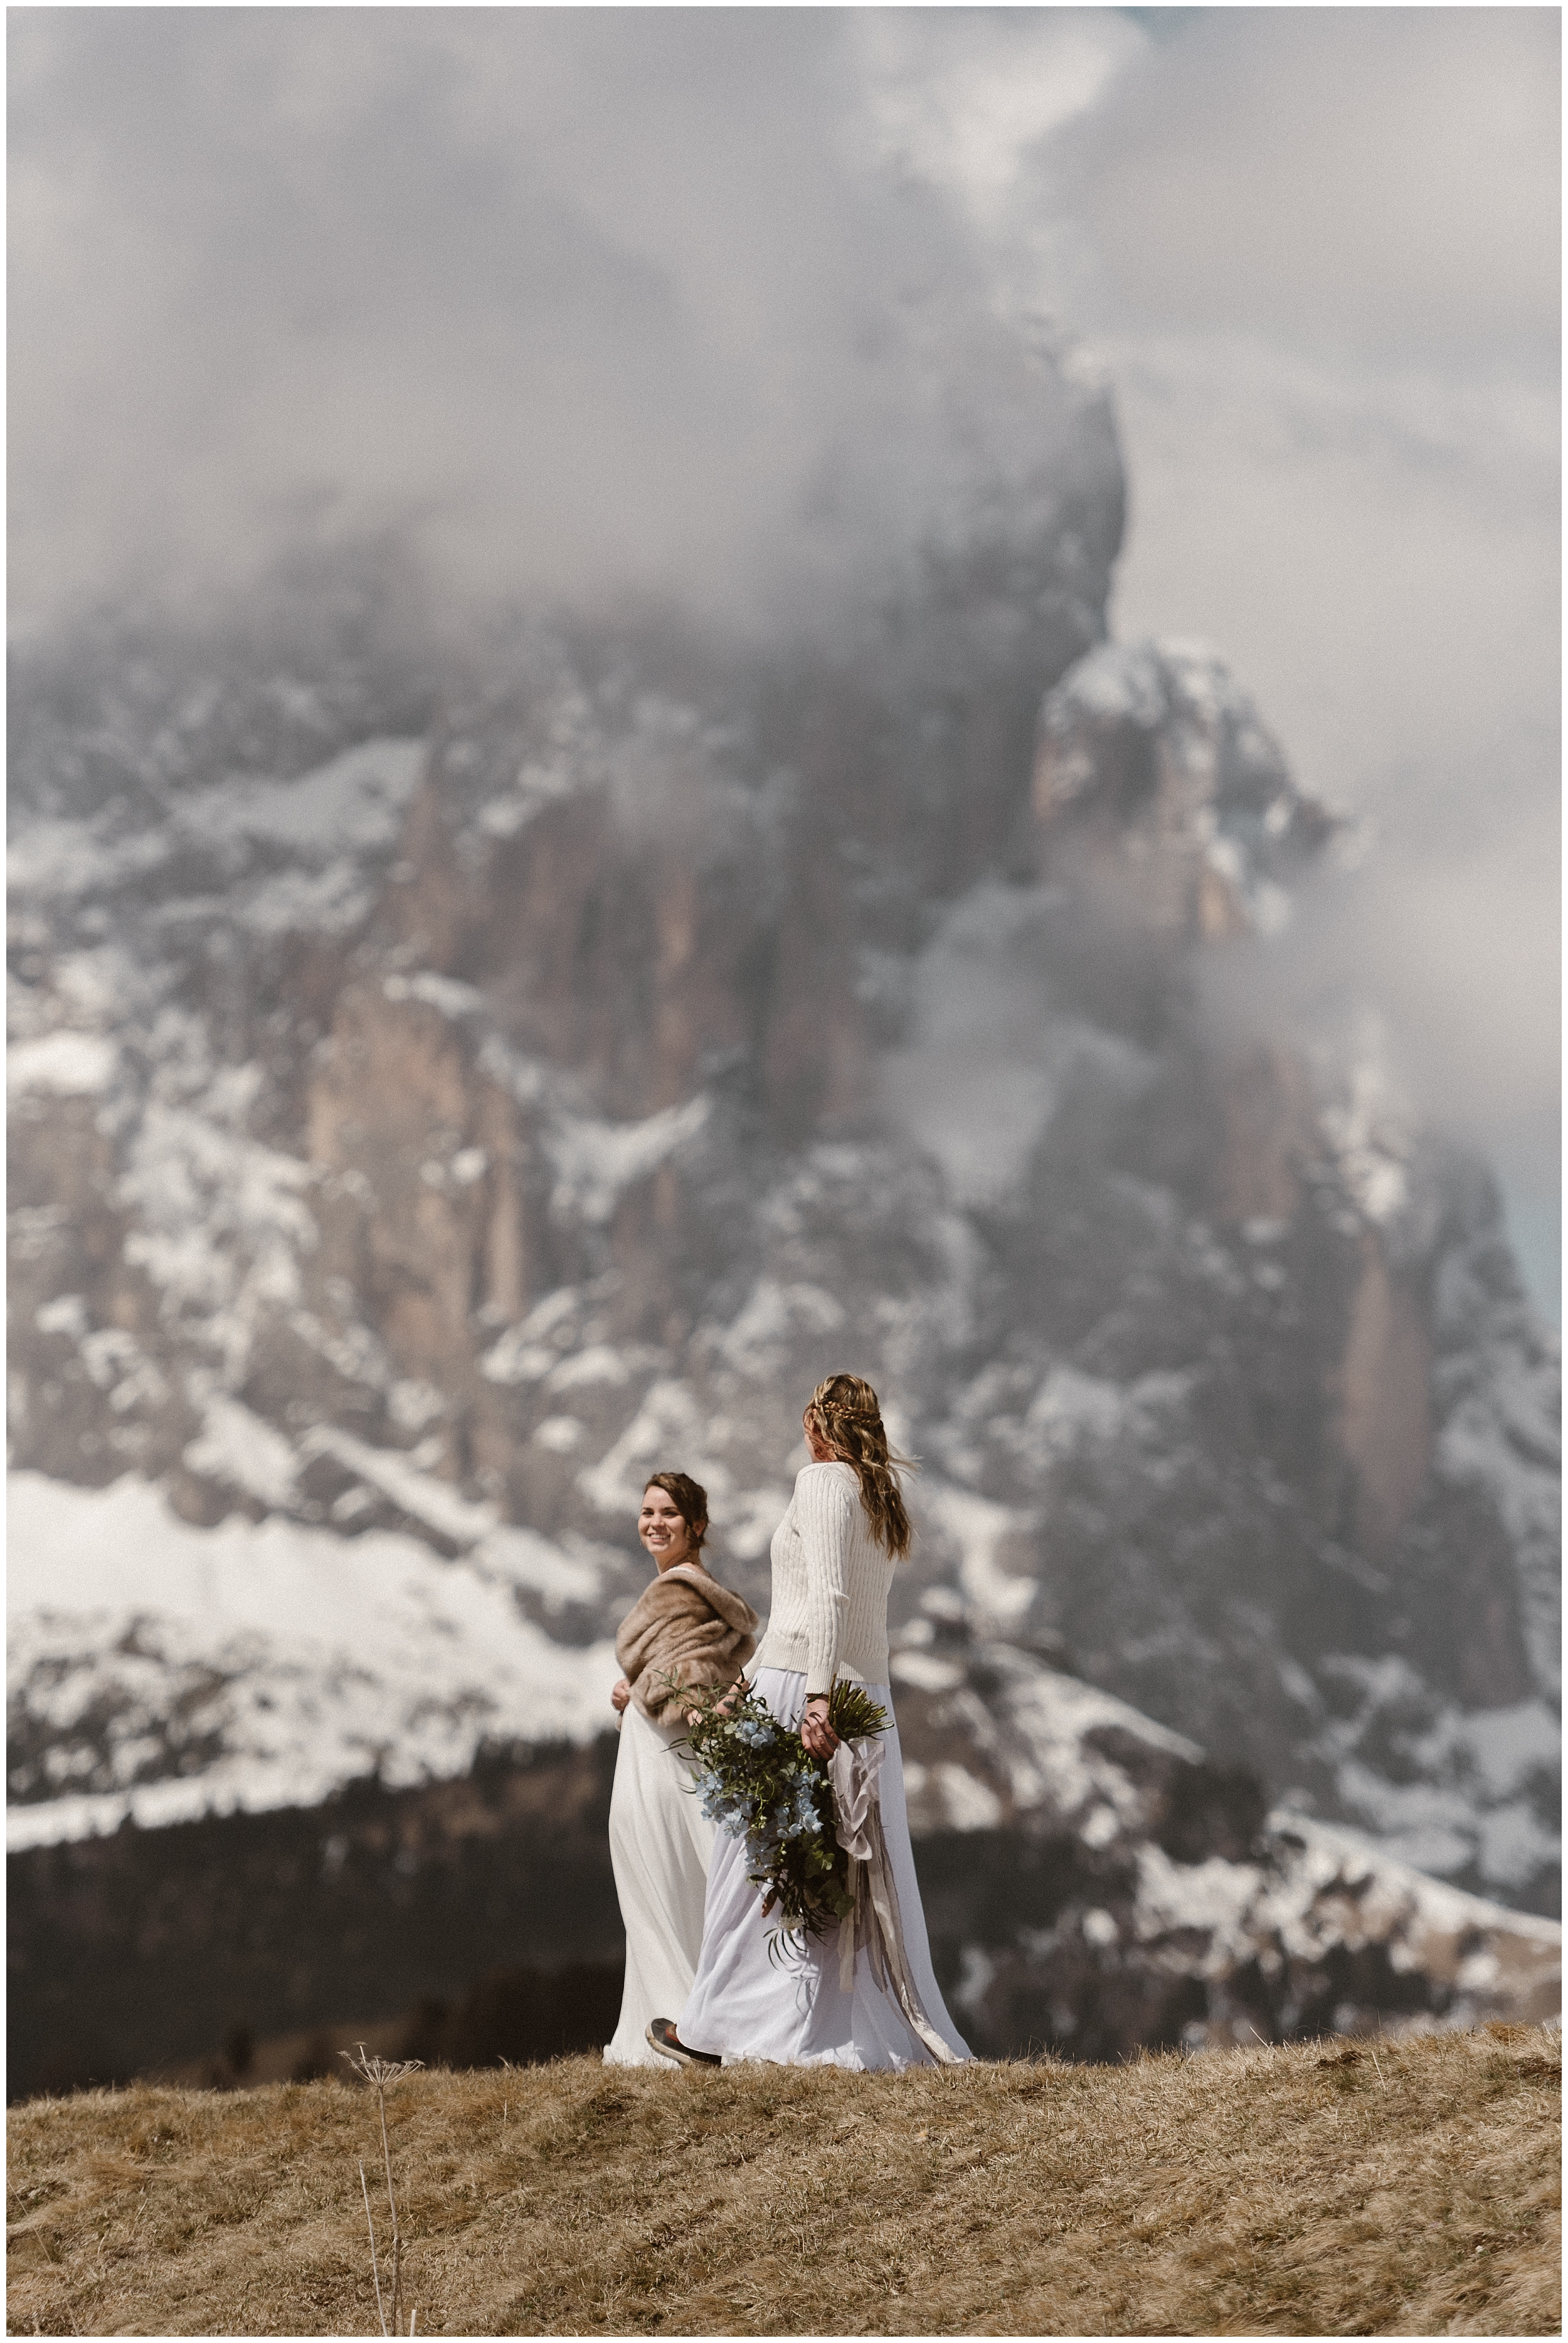 Two brides take hands in white wedding dresses (and with gorgeous bouquets) and walk toward a gorgeous, granite and snow-covered mountain peak. This is one of the best places to elope because of its gorgeous scenery.